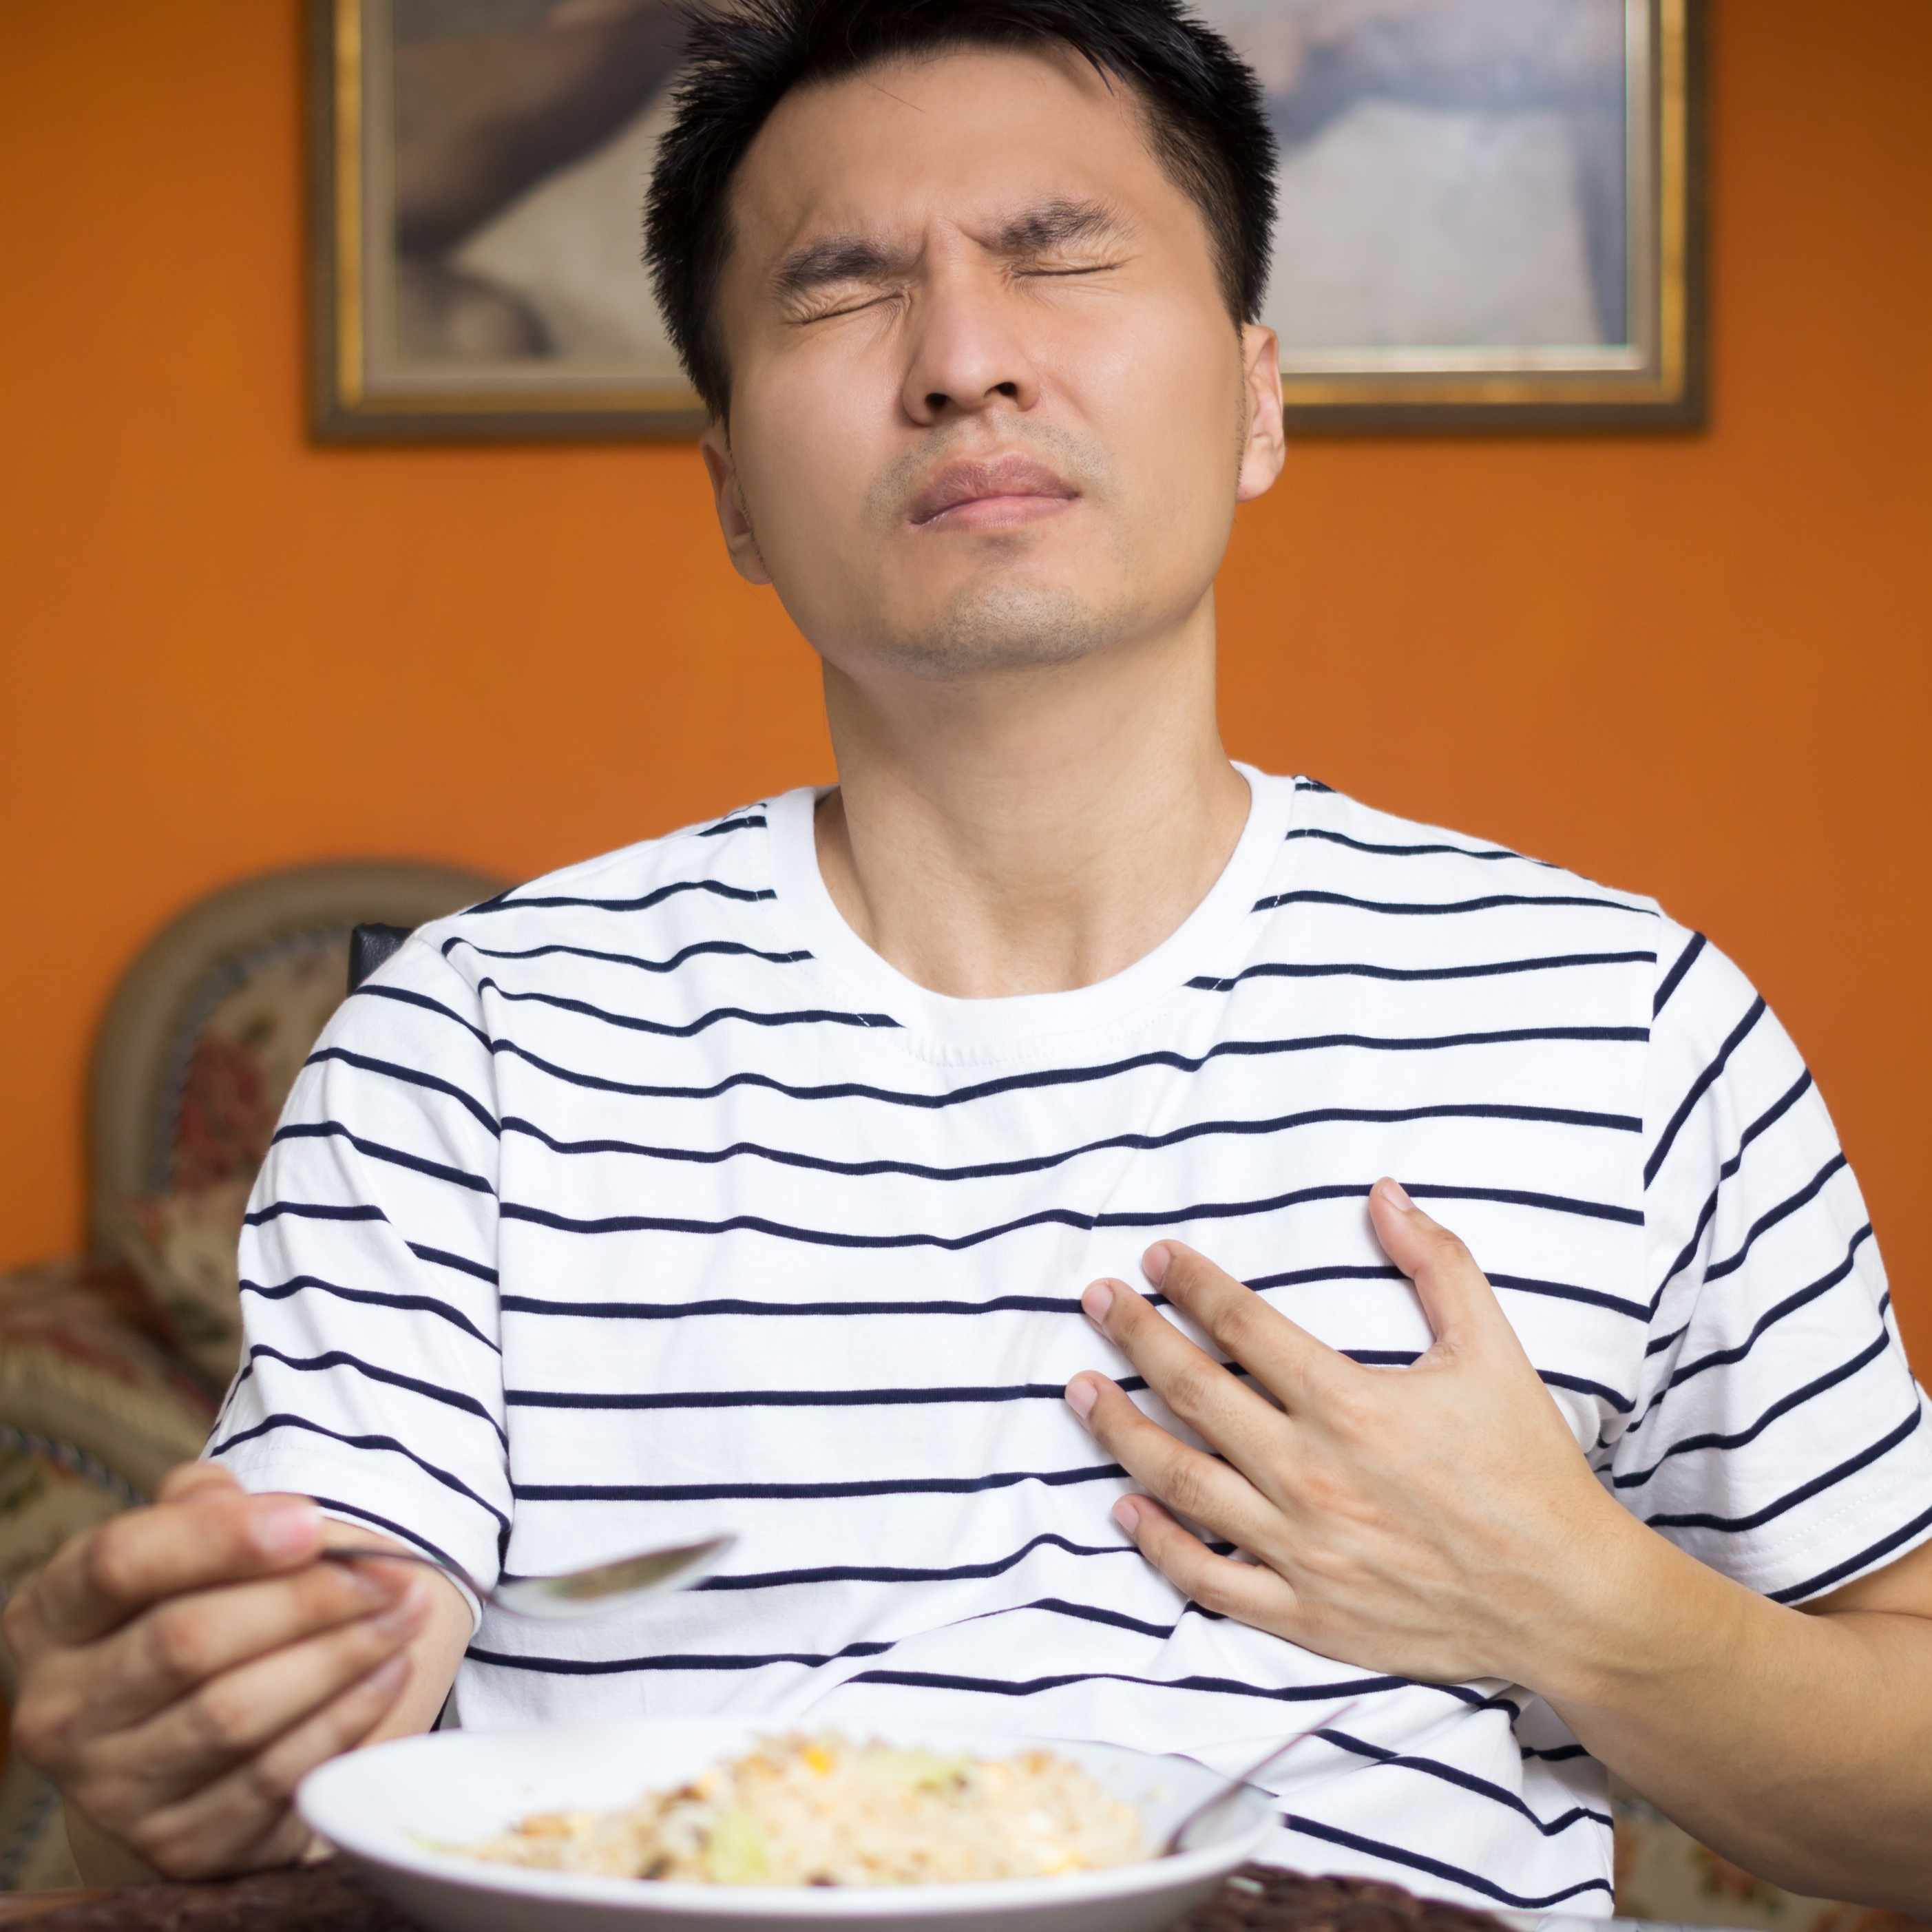 A man experiencing pain while eating food